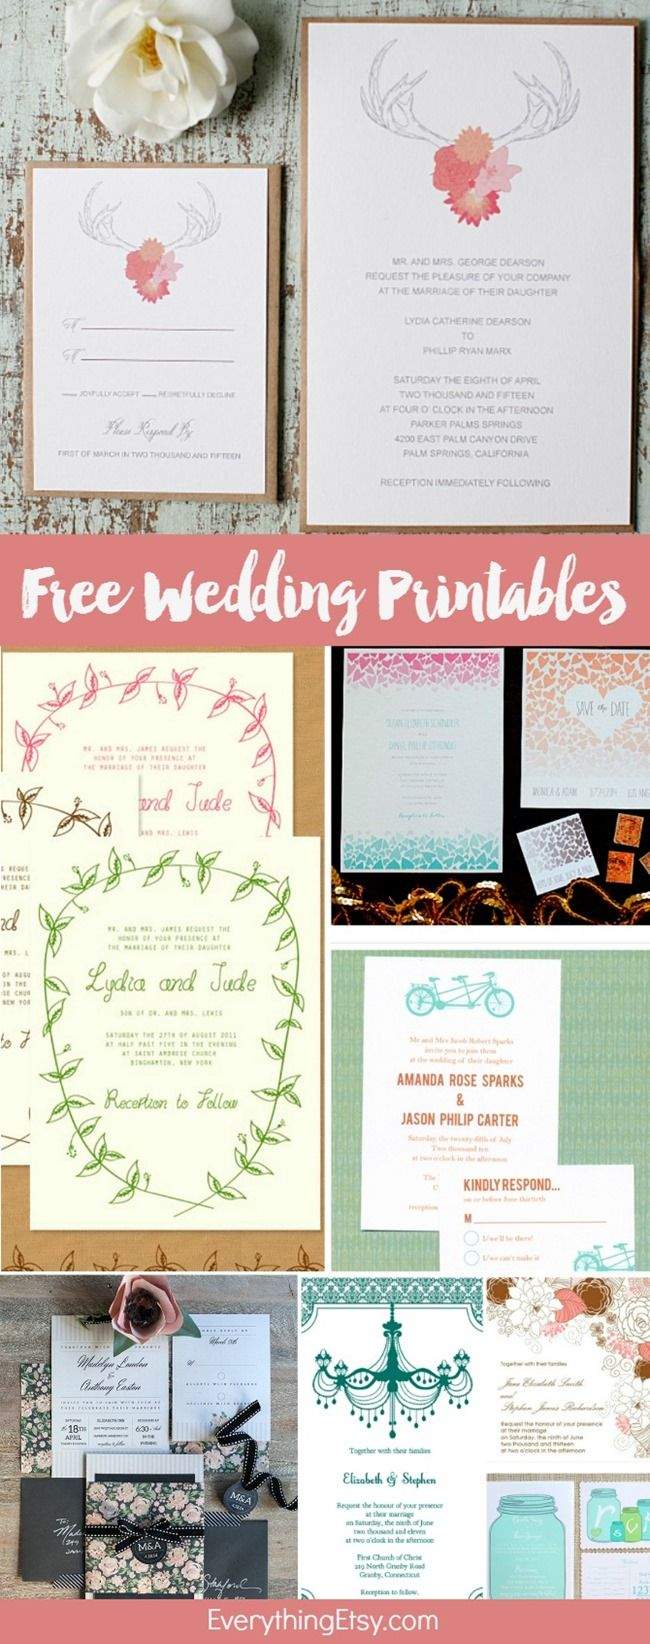 Free Wedding Printablesu2013DIY Invitations 79 best Wedding